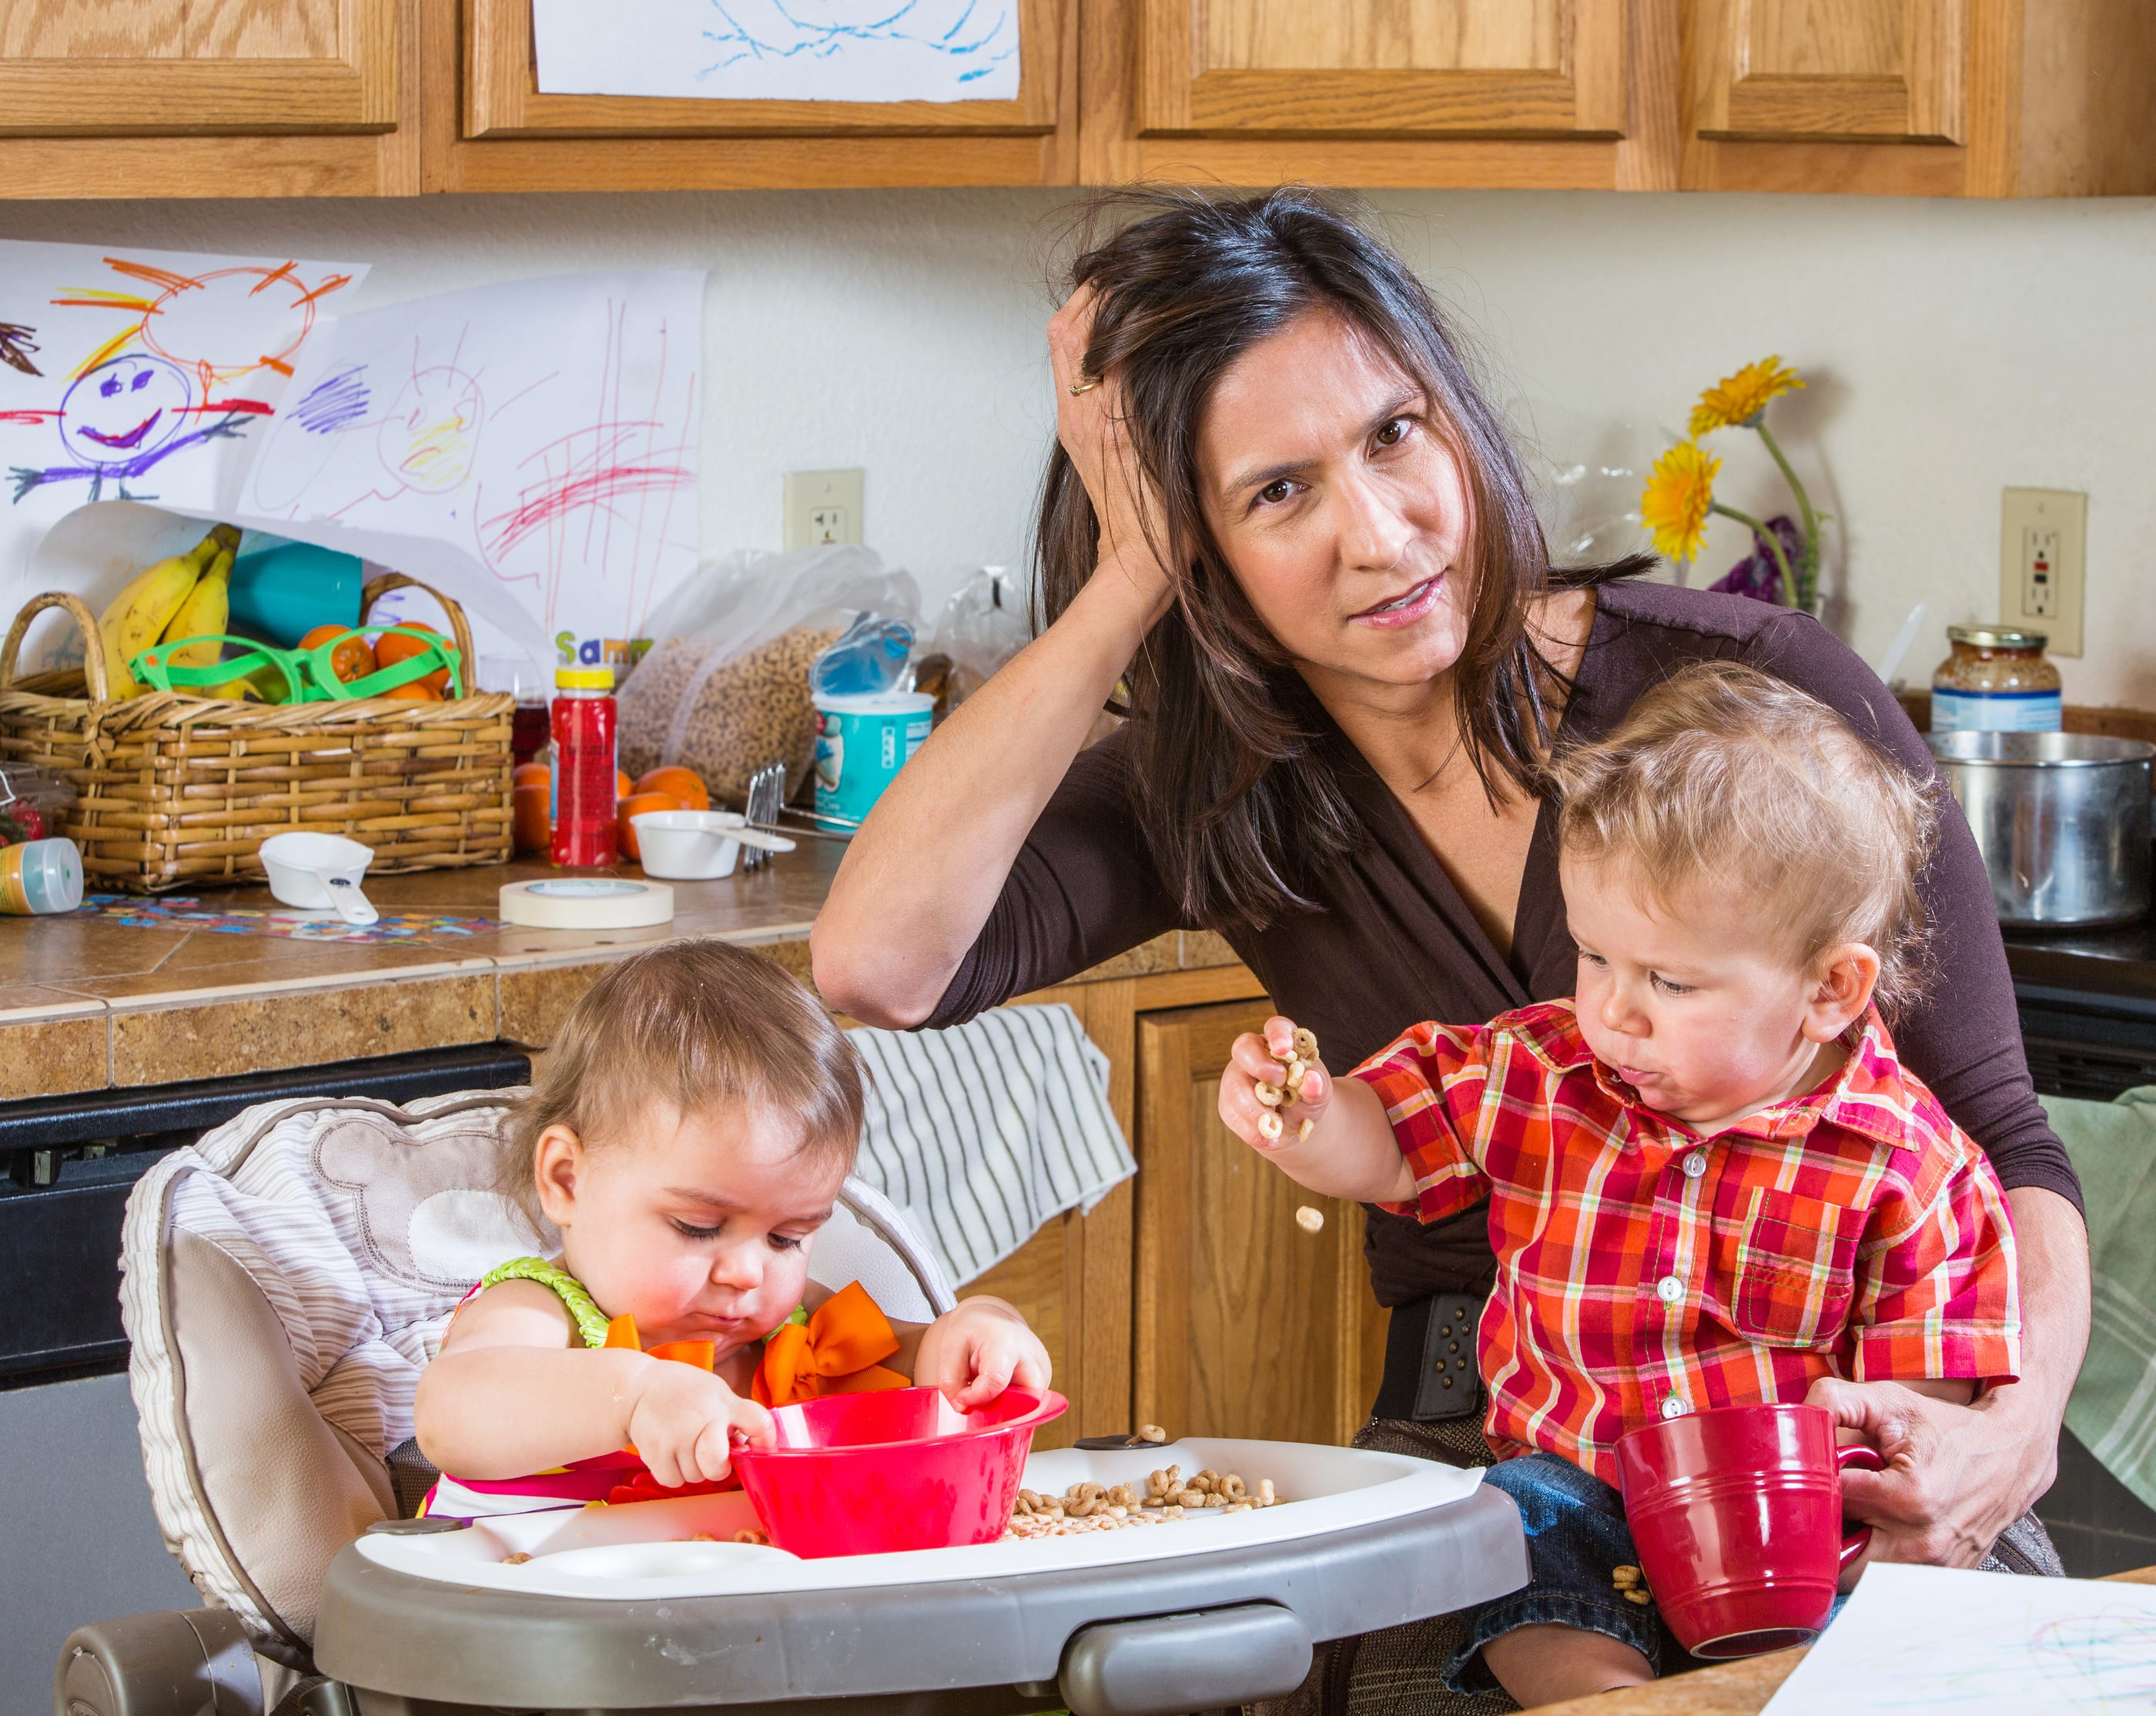 A mother of two toddlers stresses over her messy kitchen.